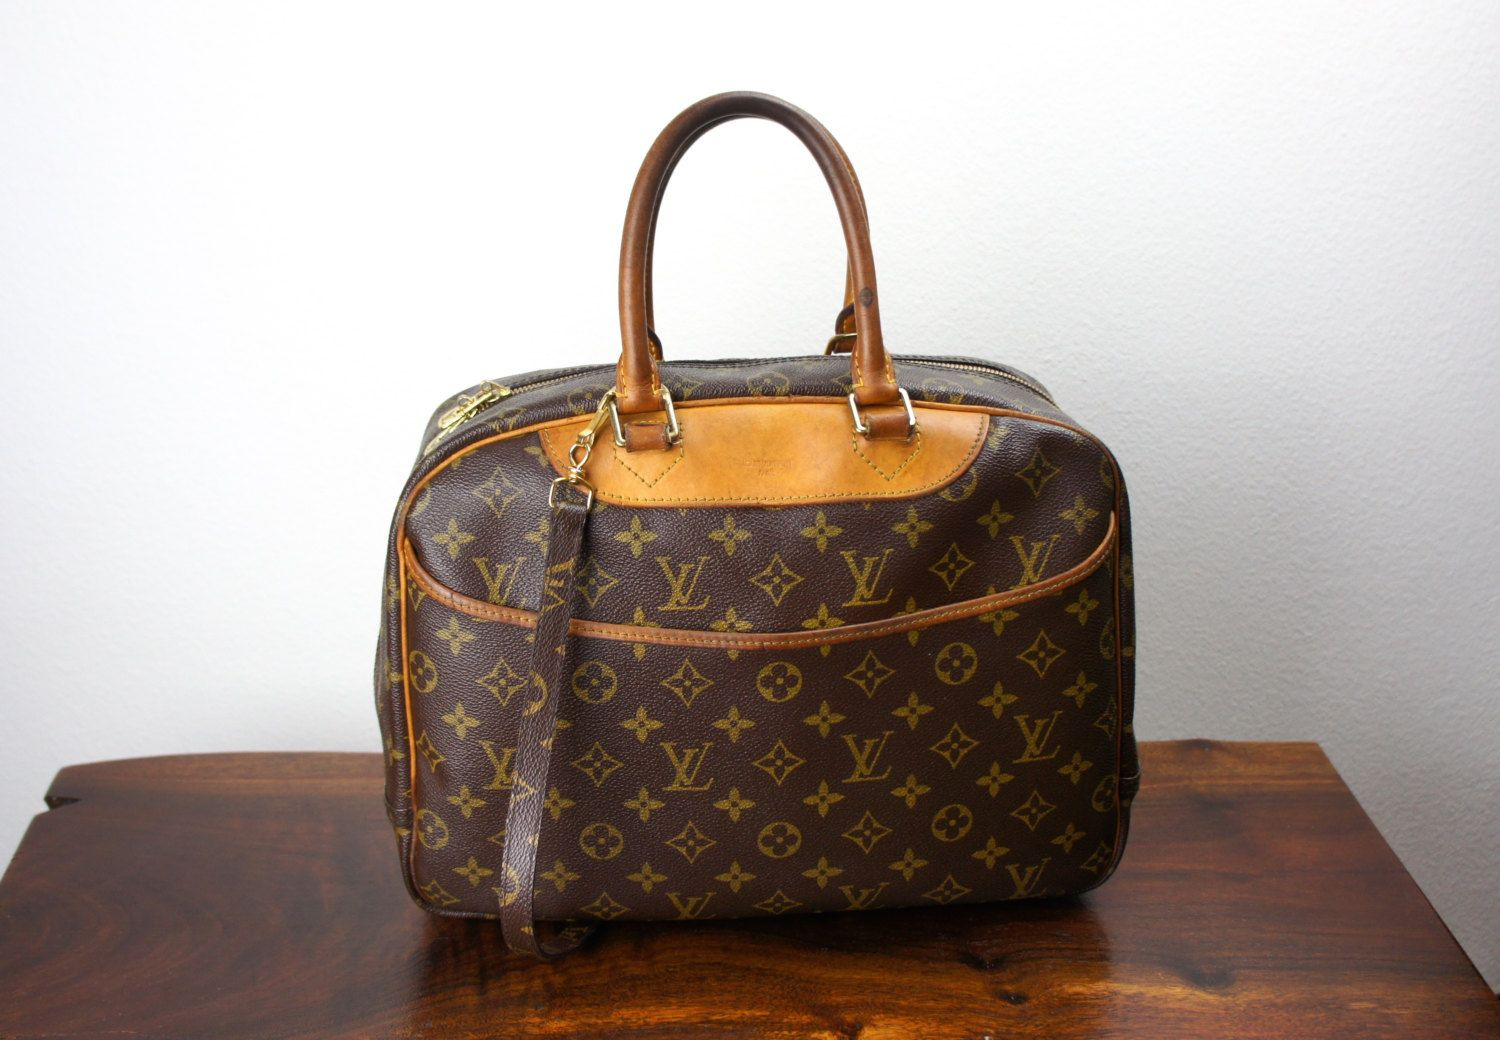 Vintage Louis Vuitton Deauville Travel Duffle Bag Carryon Weekender Bag Cosmetic Case Luggage Duffle Bag Travel Vintage Louis Vuitton Louis Vuitton Deauville